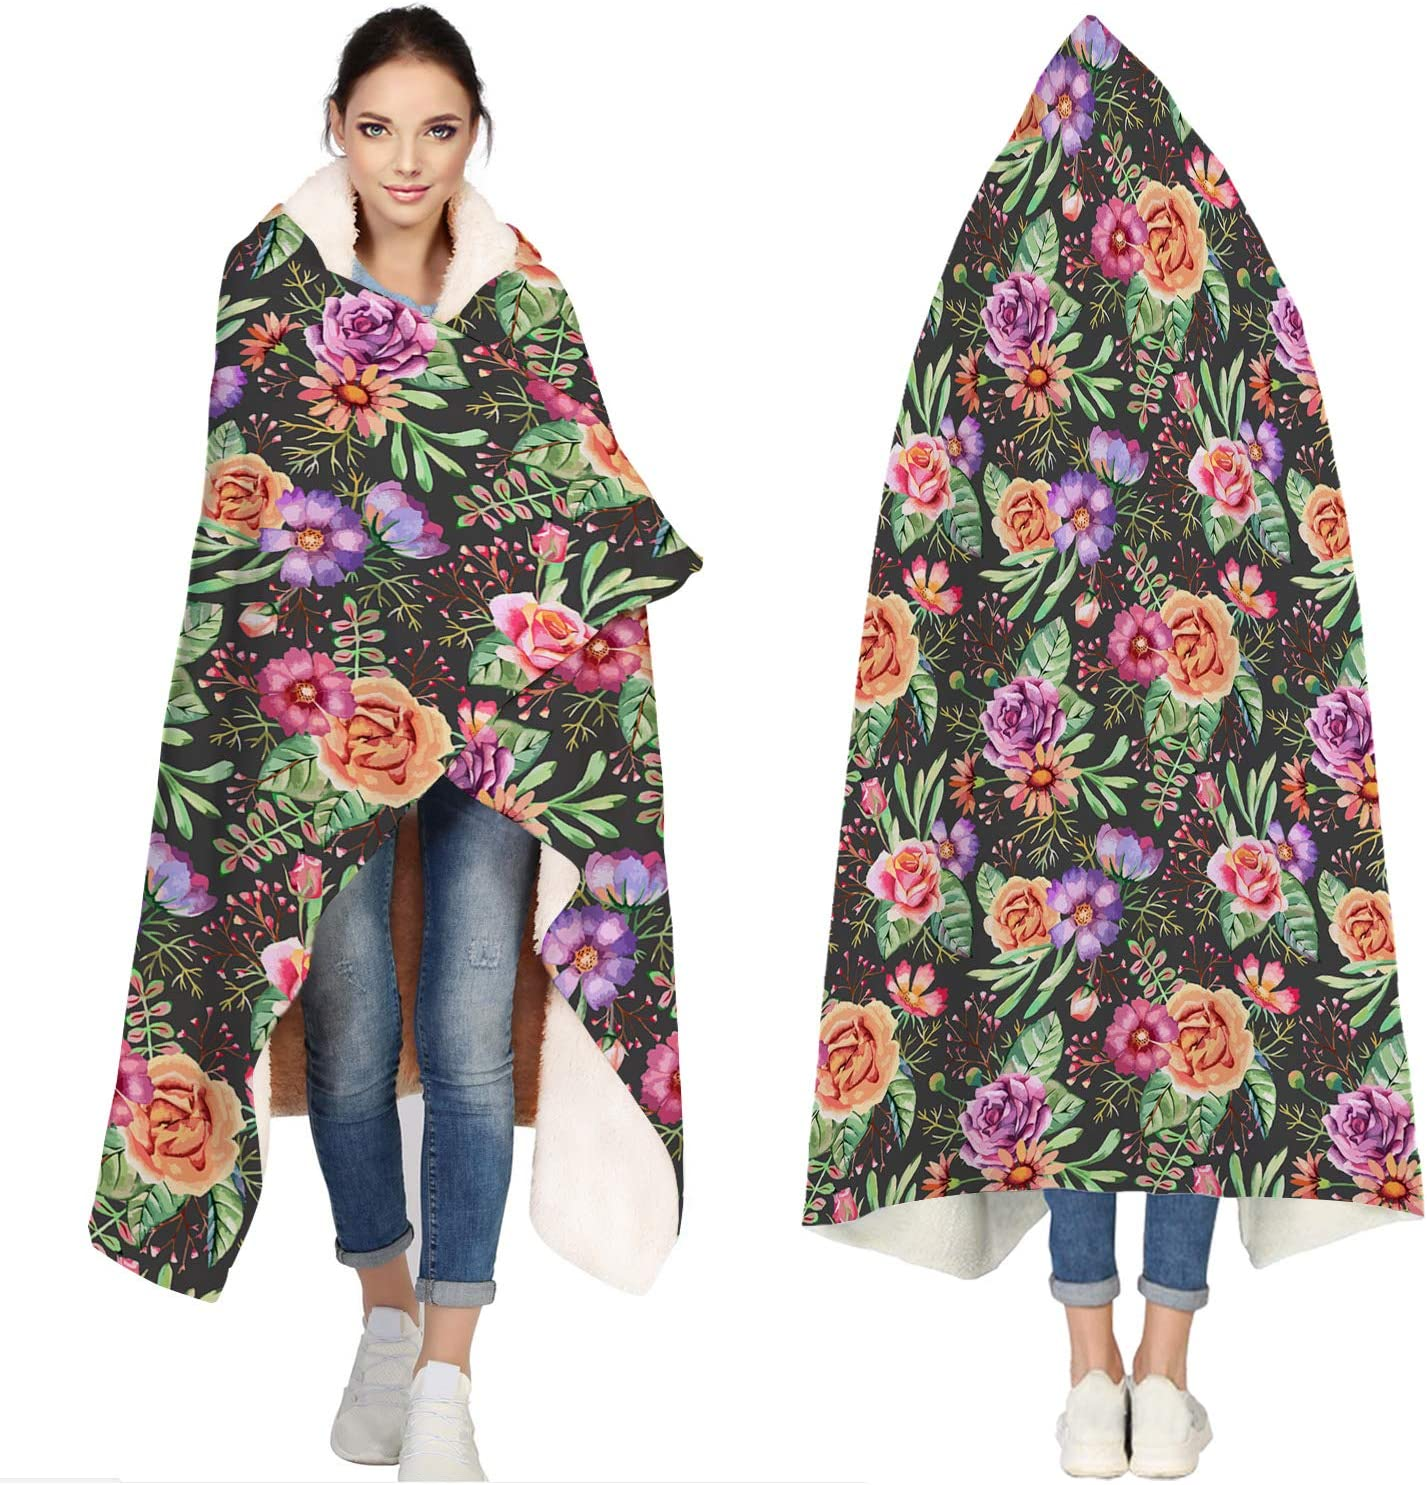 Seven Roses Hooded Super-cheap Blankets Inventory cleanup selling sale for Adults Watercolor Flowers Bat -